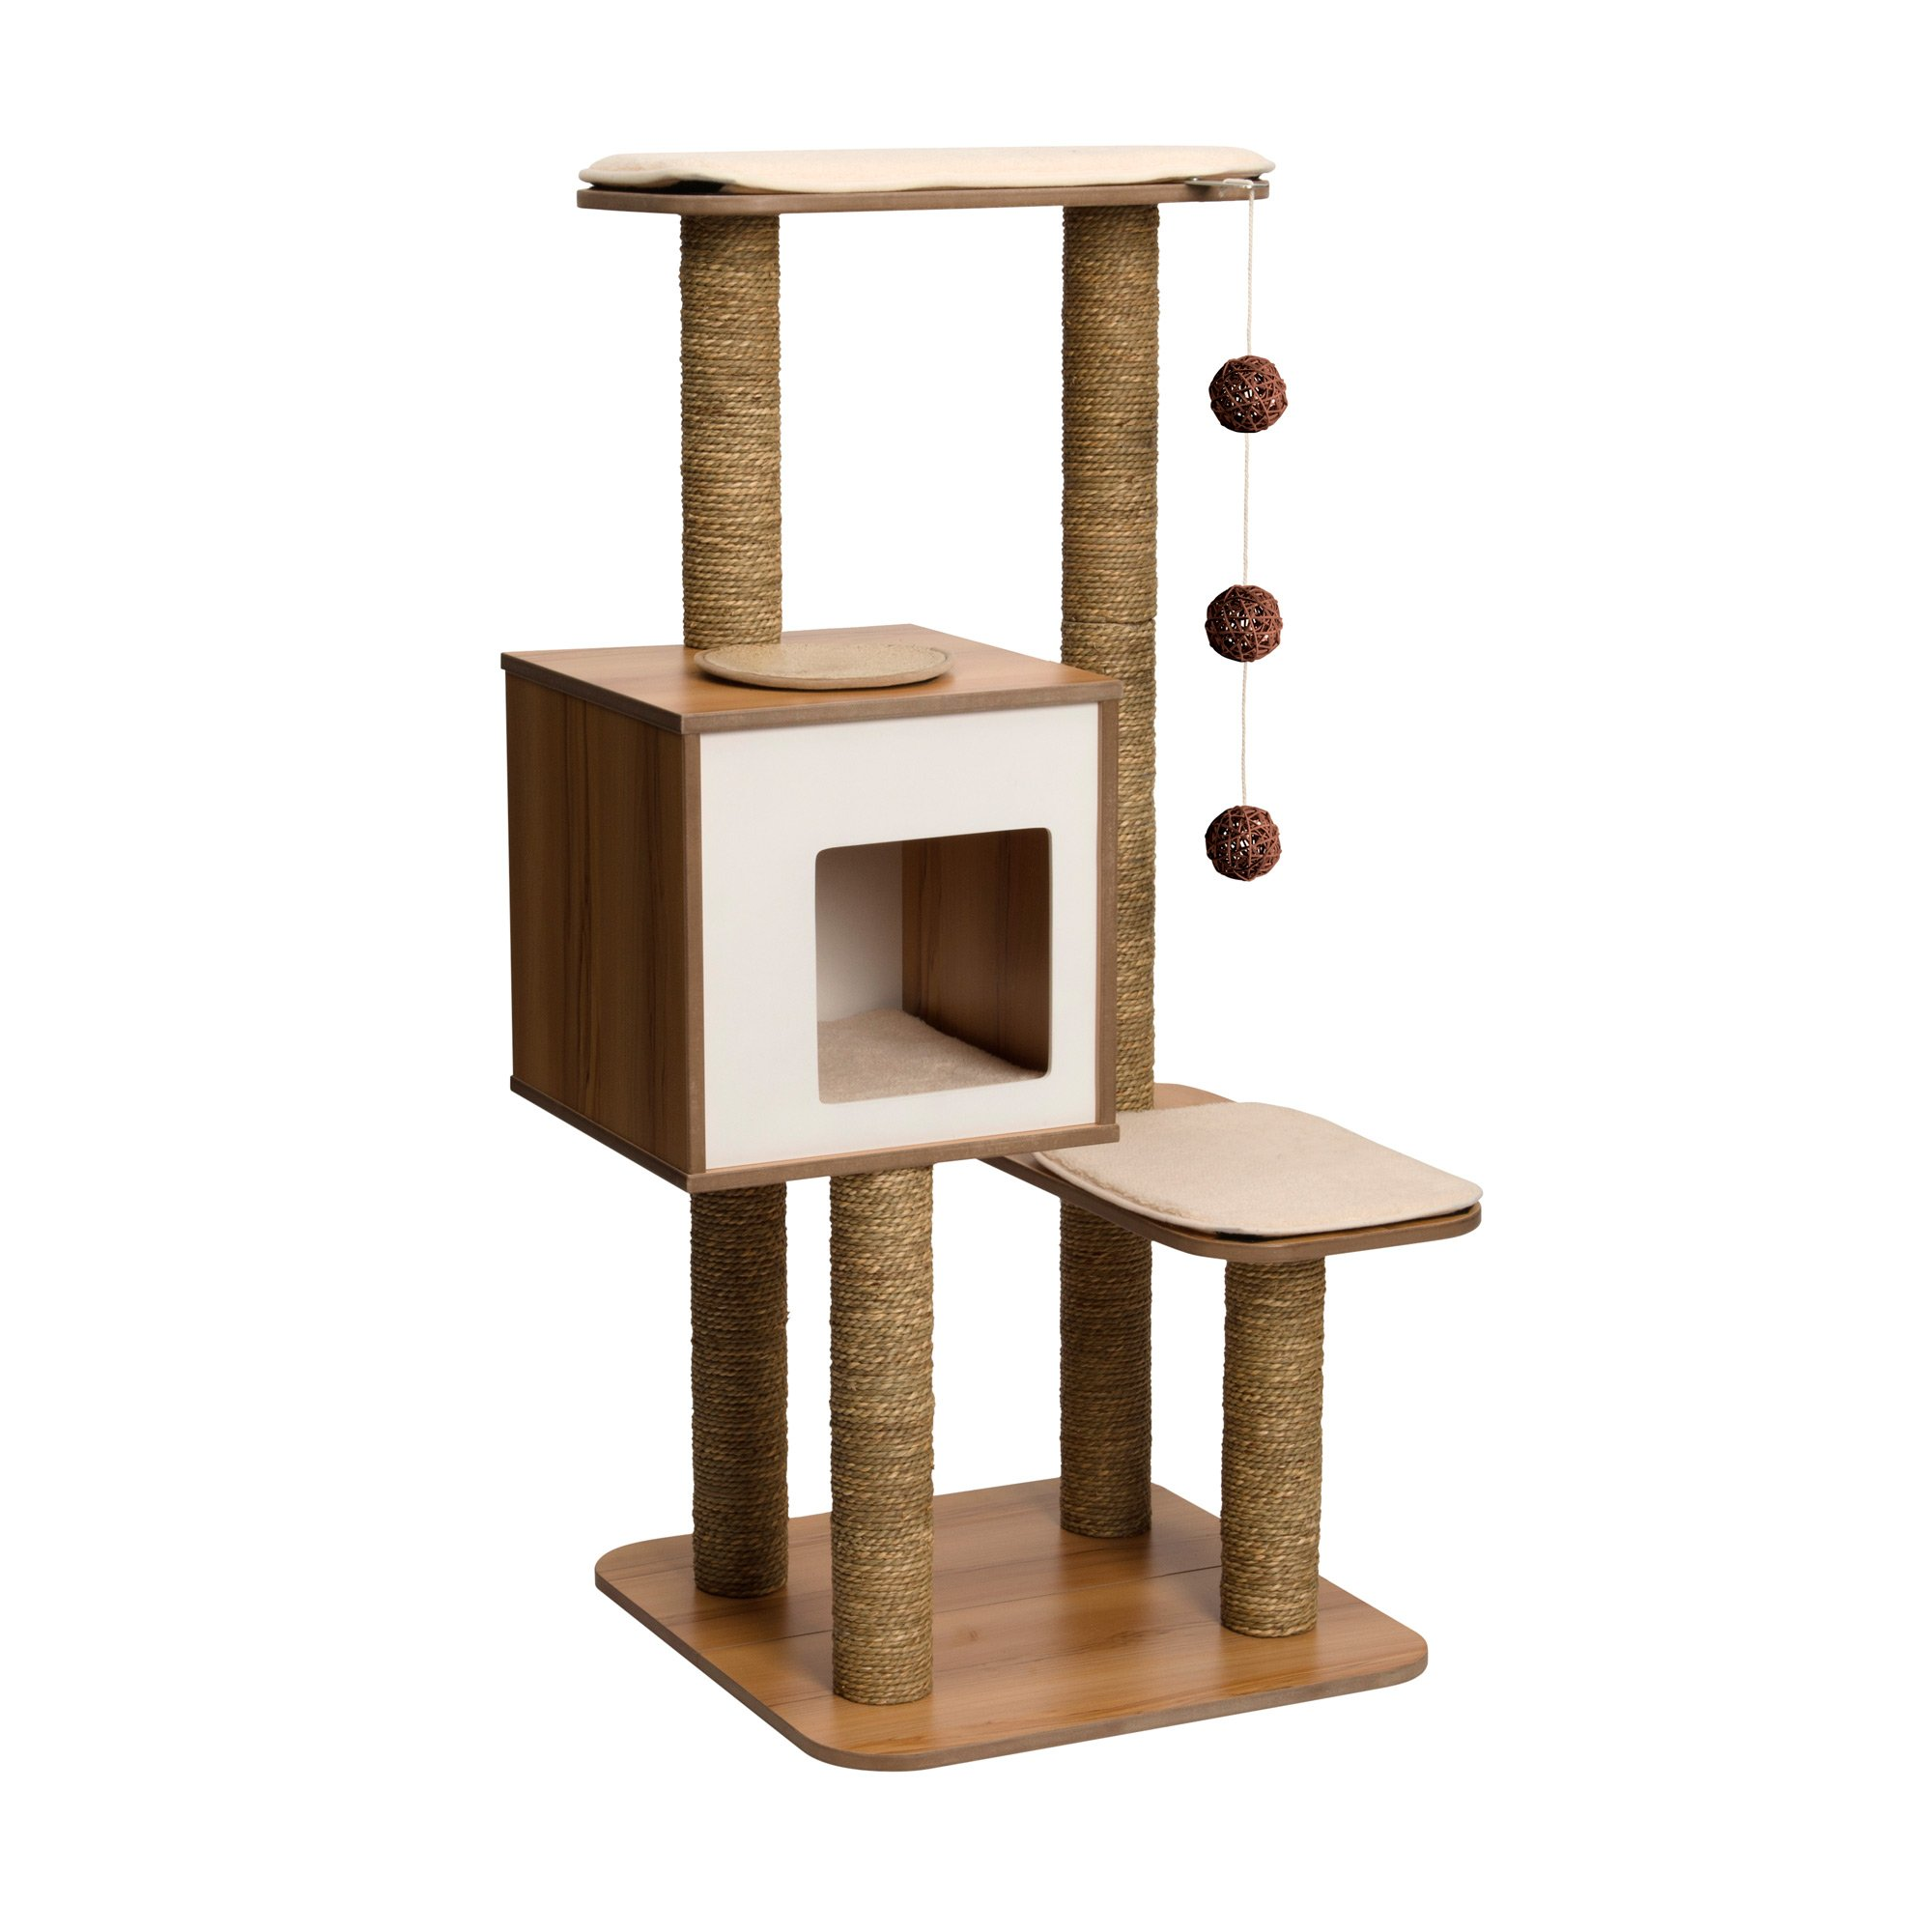 Vesper Cat Furniture V High Base Petco